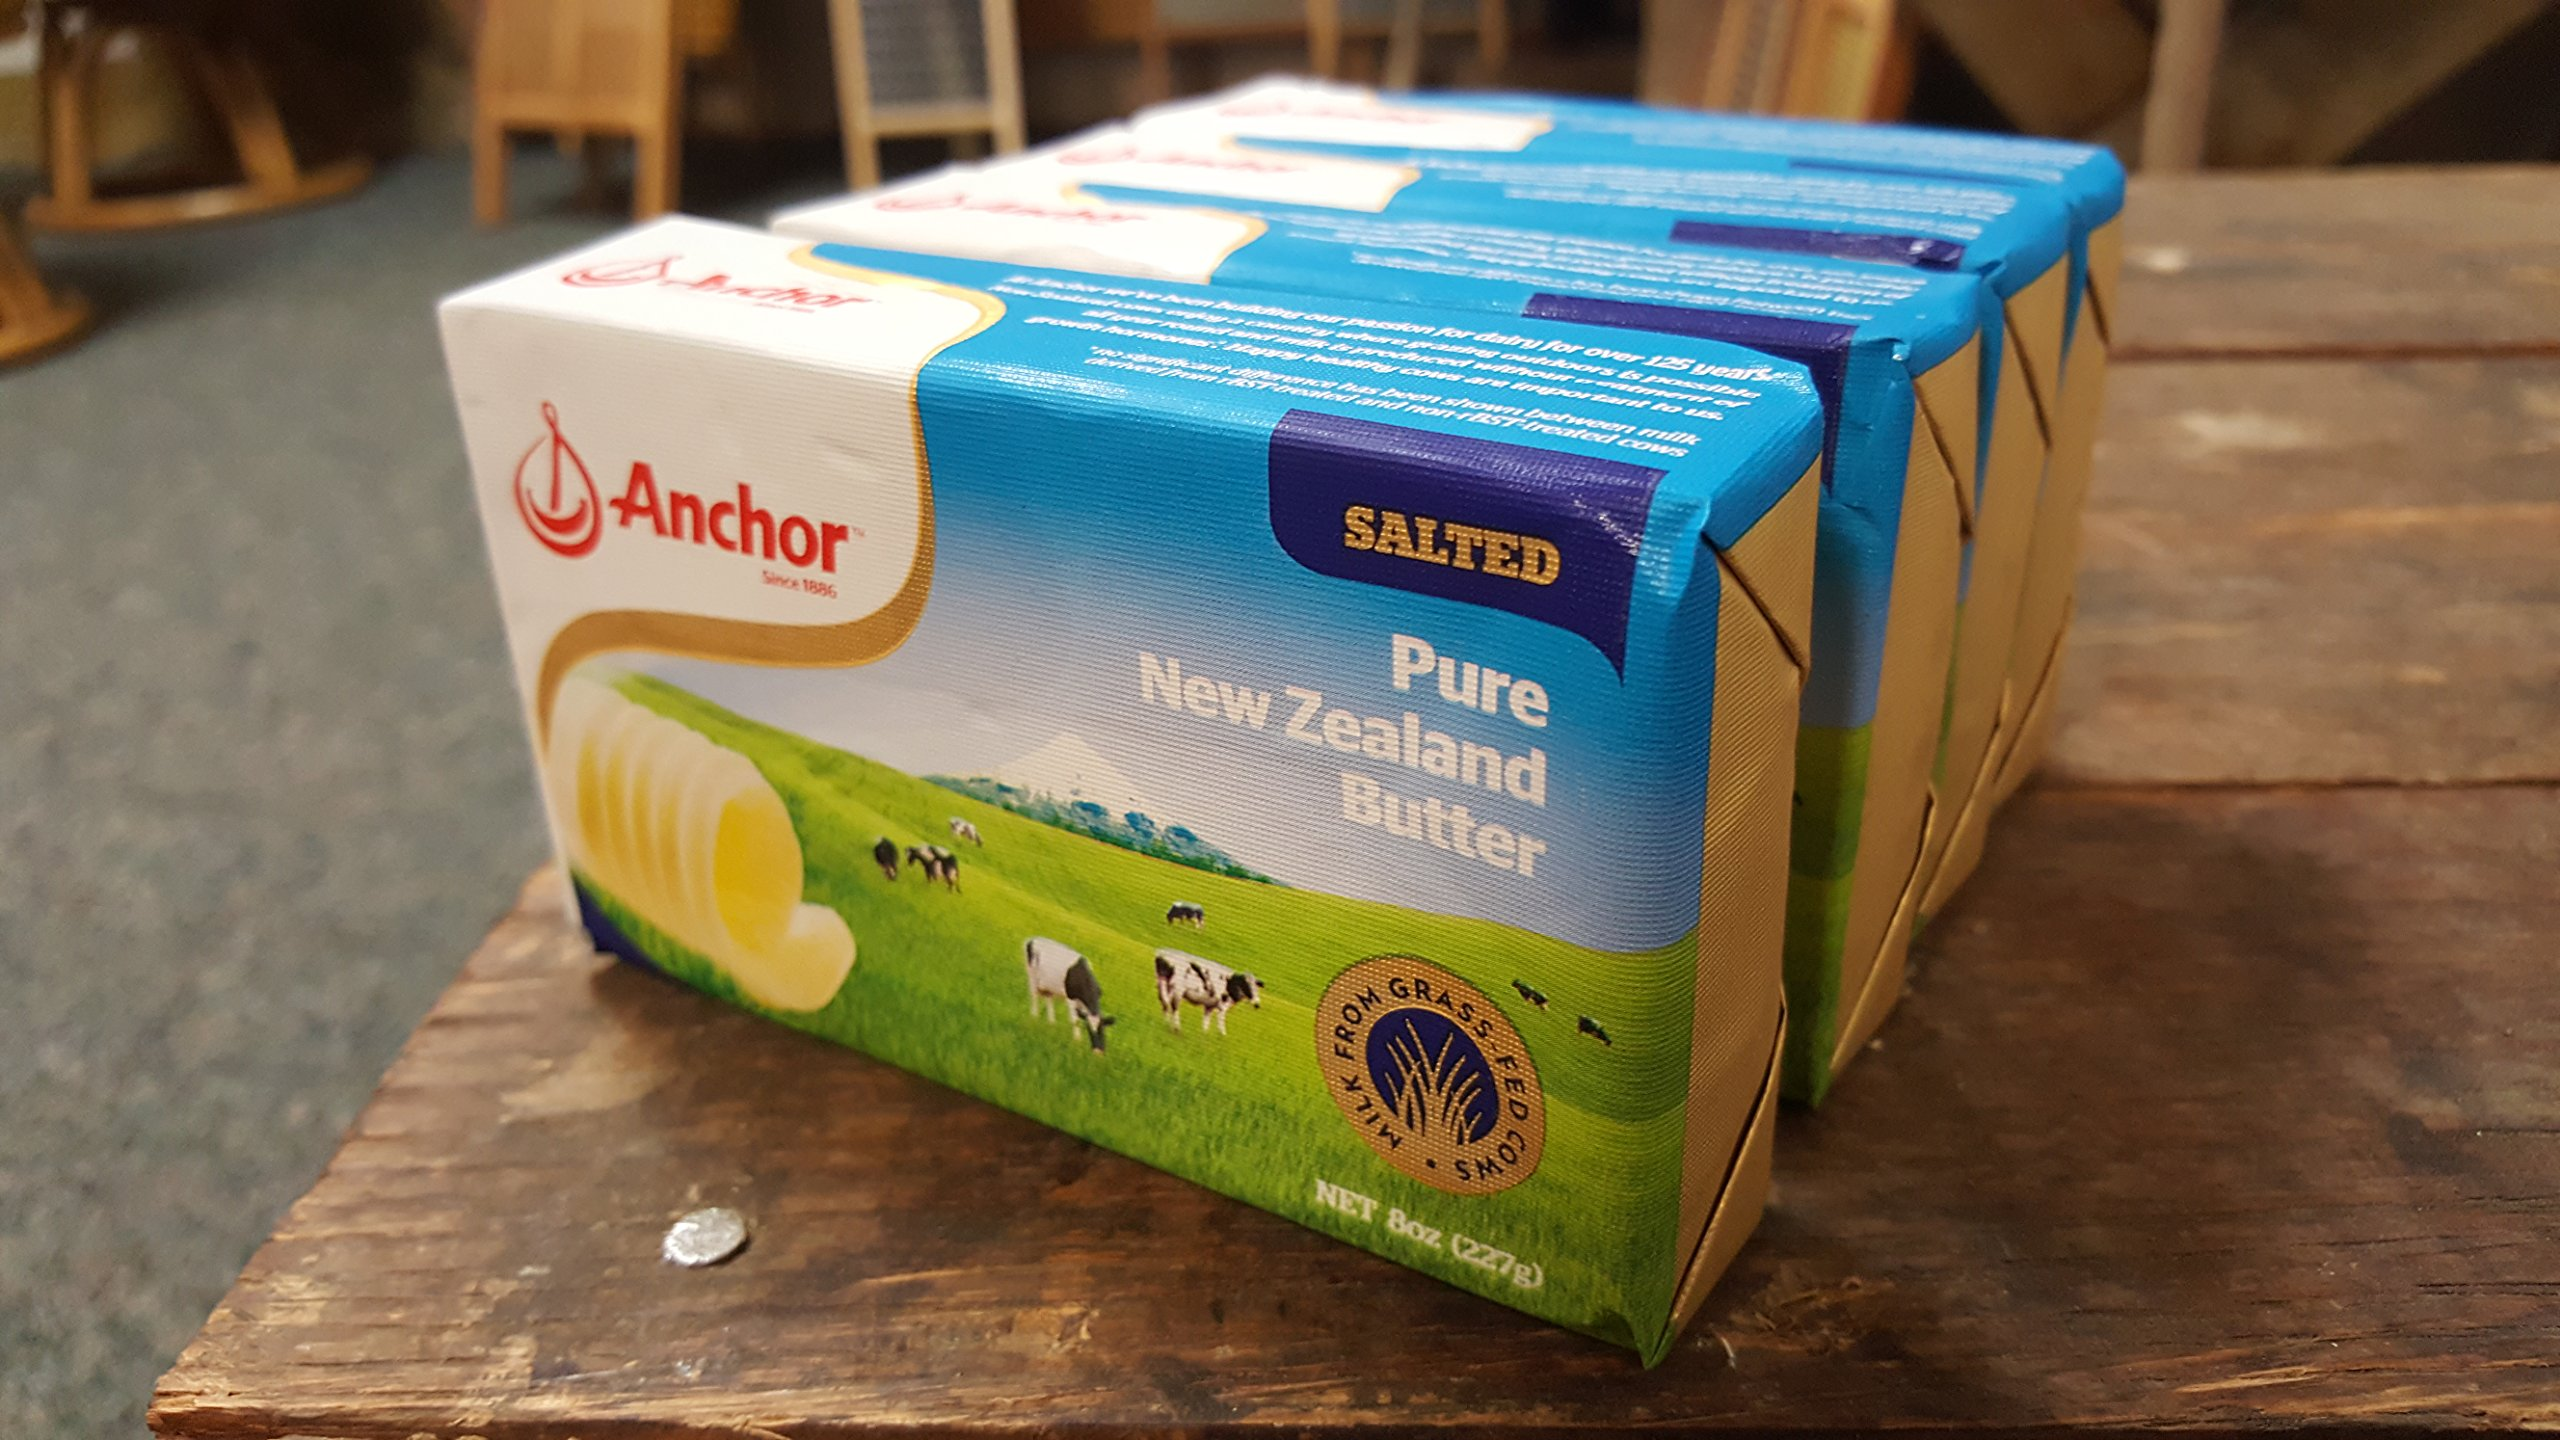 Anchor Butter New Zealand, Salted. Pack of 4 x 8oz packs (2lb)